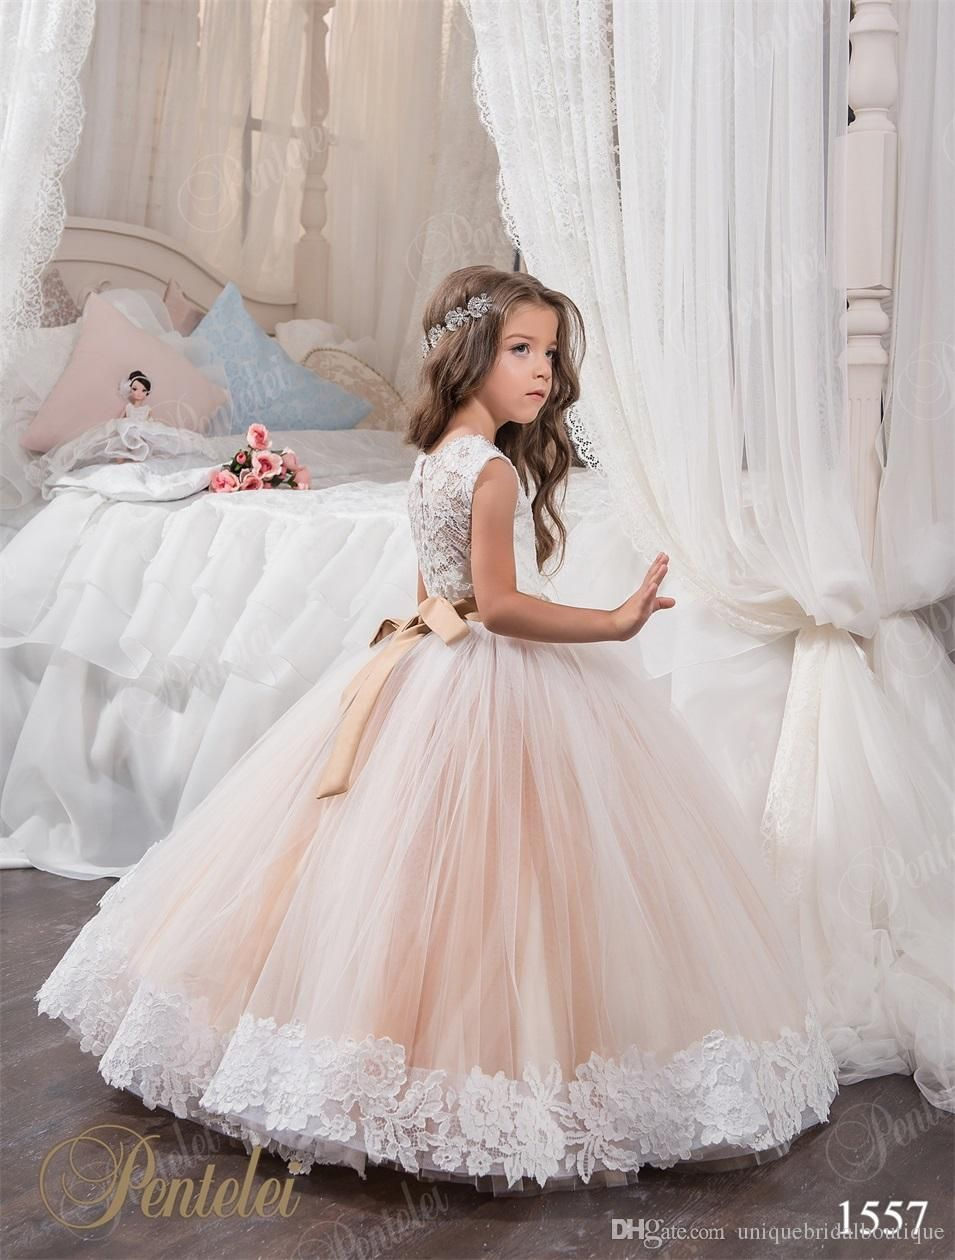 Flower Girl Dresses Wedding Party Dress Kids Girls High Waist Sleeveless Pleated Flower Girl Dress Princess Vestidos For Pageant Wedding Holiday Birthday Party Dress 2019 Official